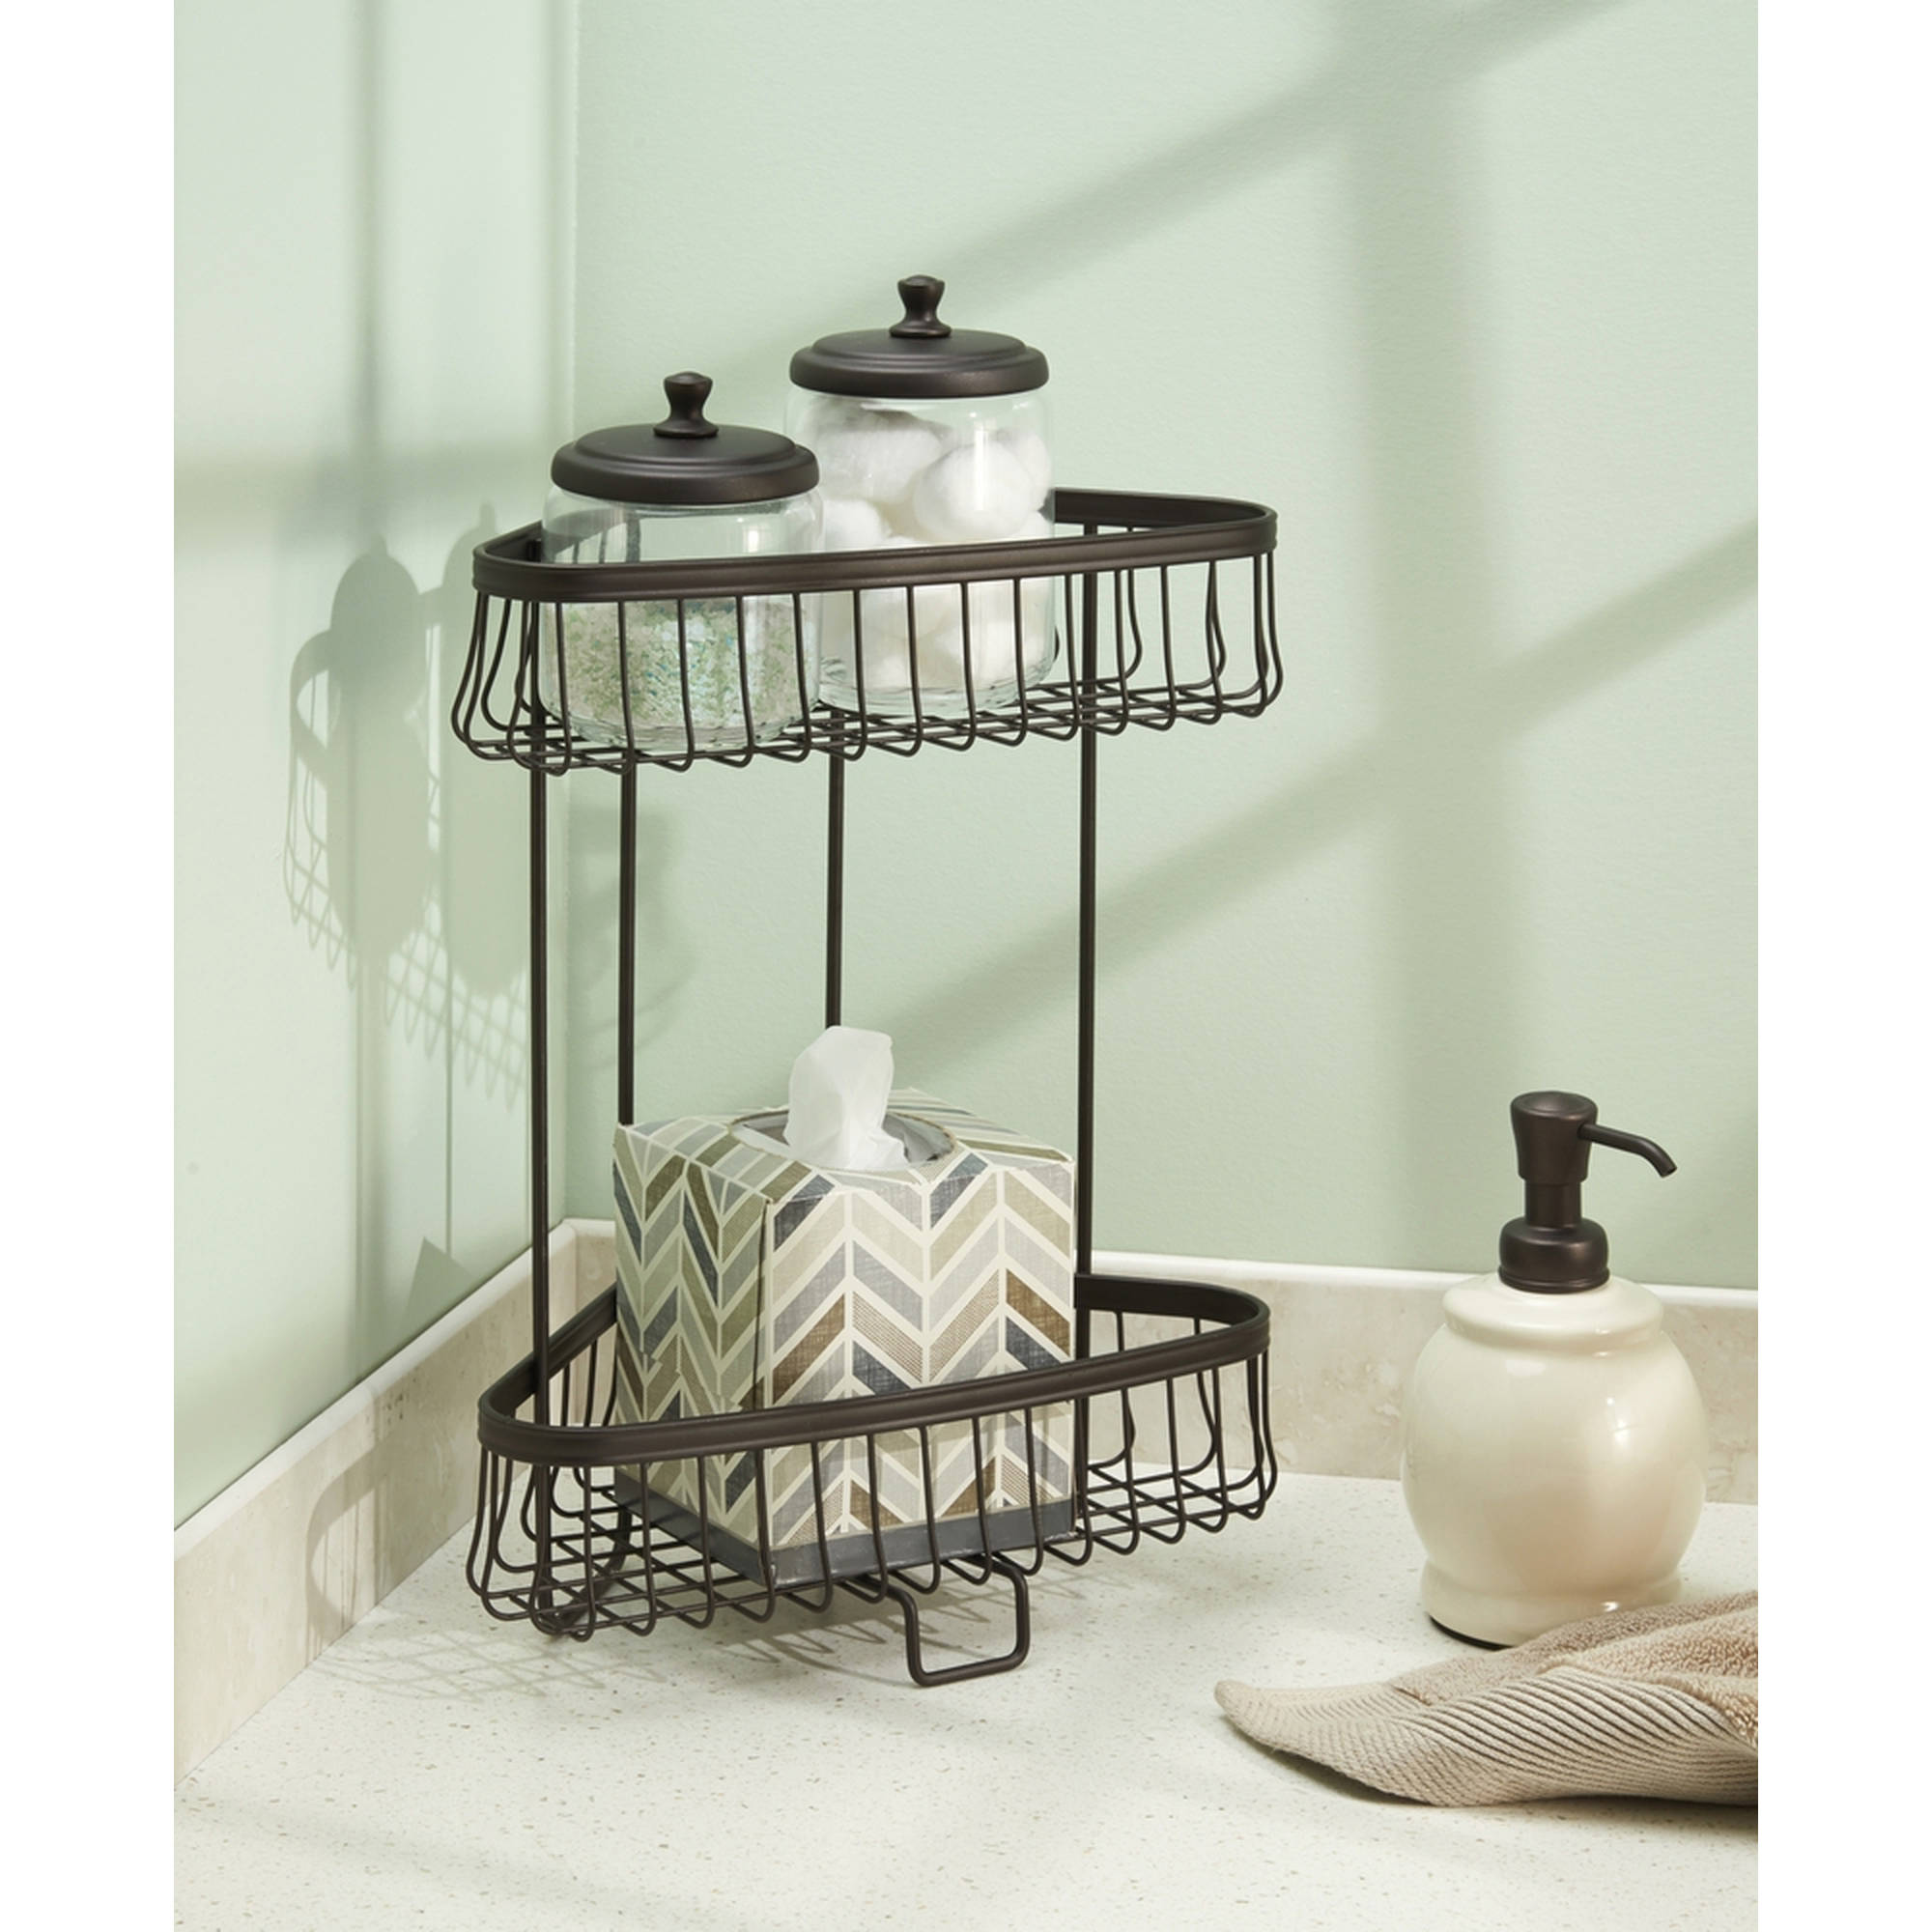 InterDesign York Lyra Free Standing Bathroom or Shower Corner Storage Shelves, 2 Tier